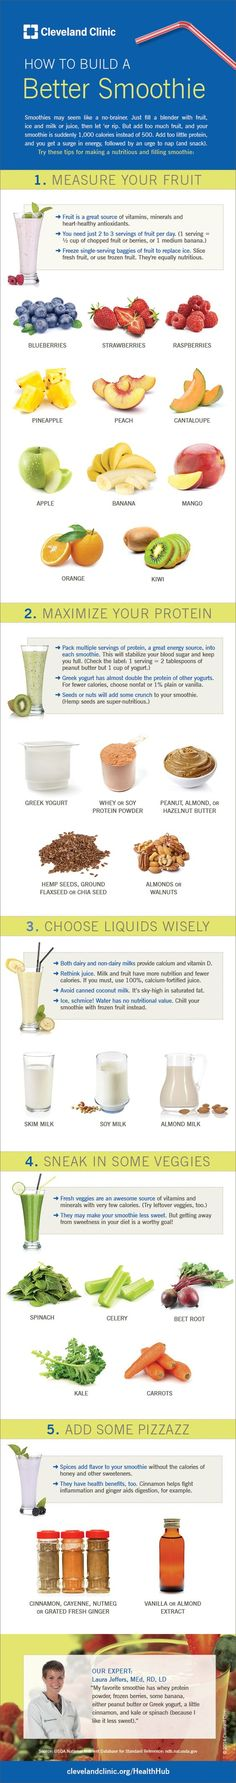 5 Ways to Build a Super Healthy Smoothie by clevelandclinic - Any non-dairy beverage will work. Try unsweetened hemp for the liquid and a boost of nutrition. Or Oat/7 Grain for a serving of whole grains.